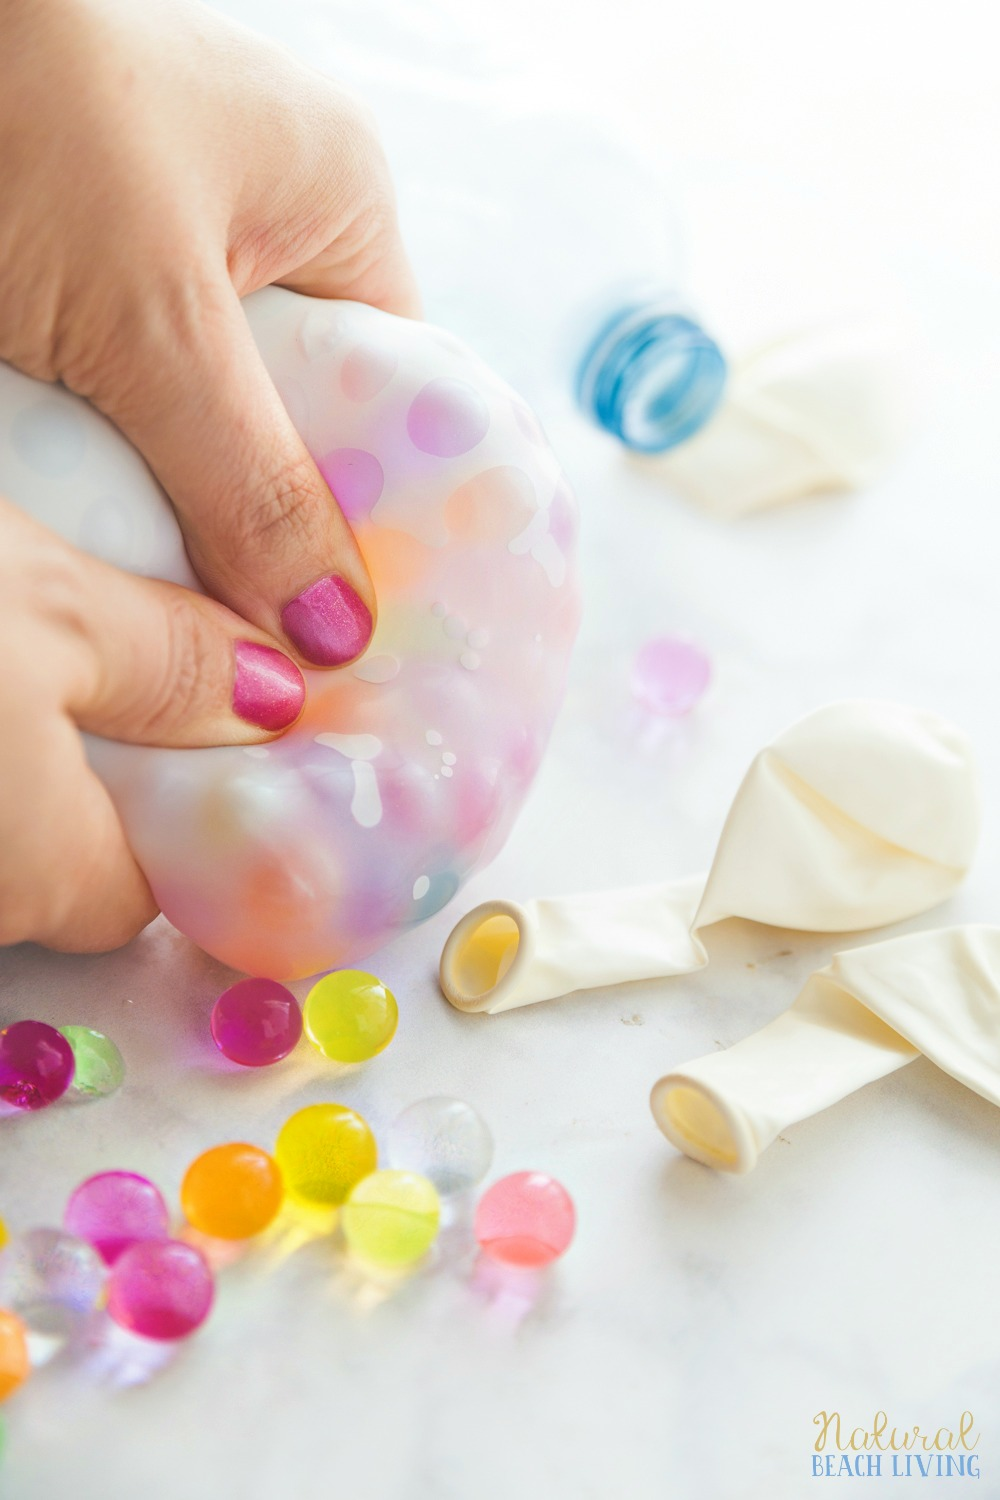 How to Make Stress Balls, The best cheap stress balls, DIY stress balls, Stress relief, DIY therapy ball, Stress balls for kids, sensory play, Orbeez Balls, therapy